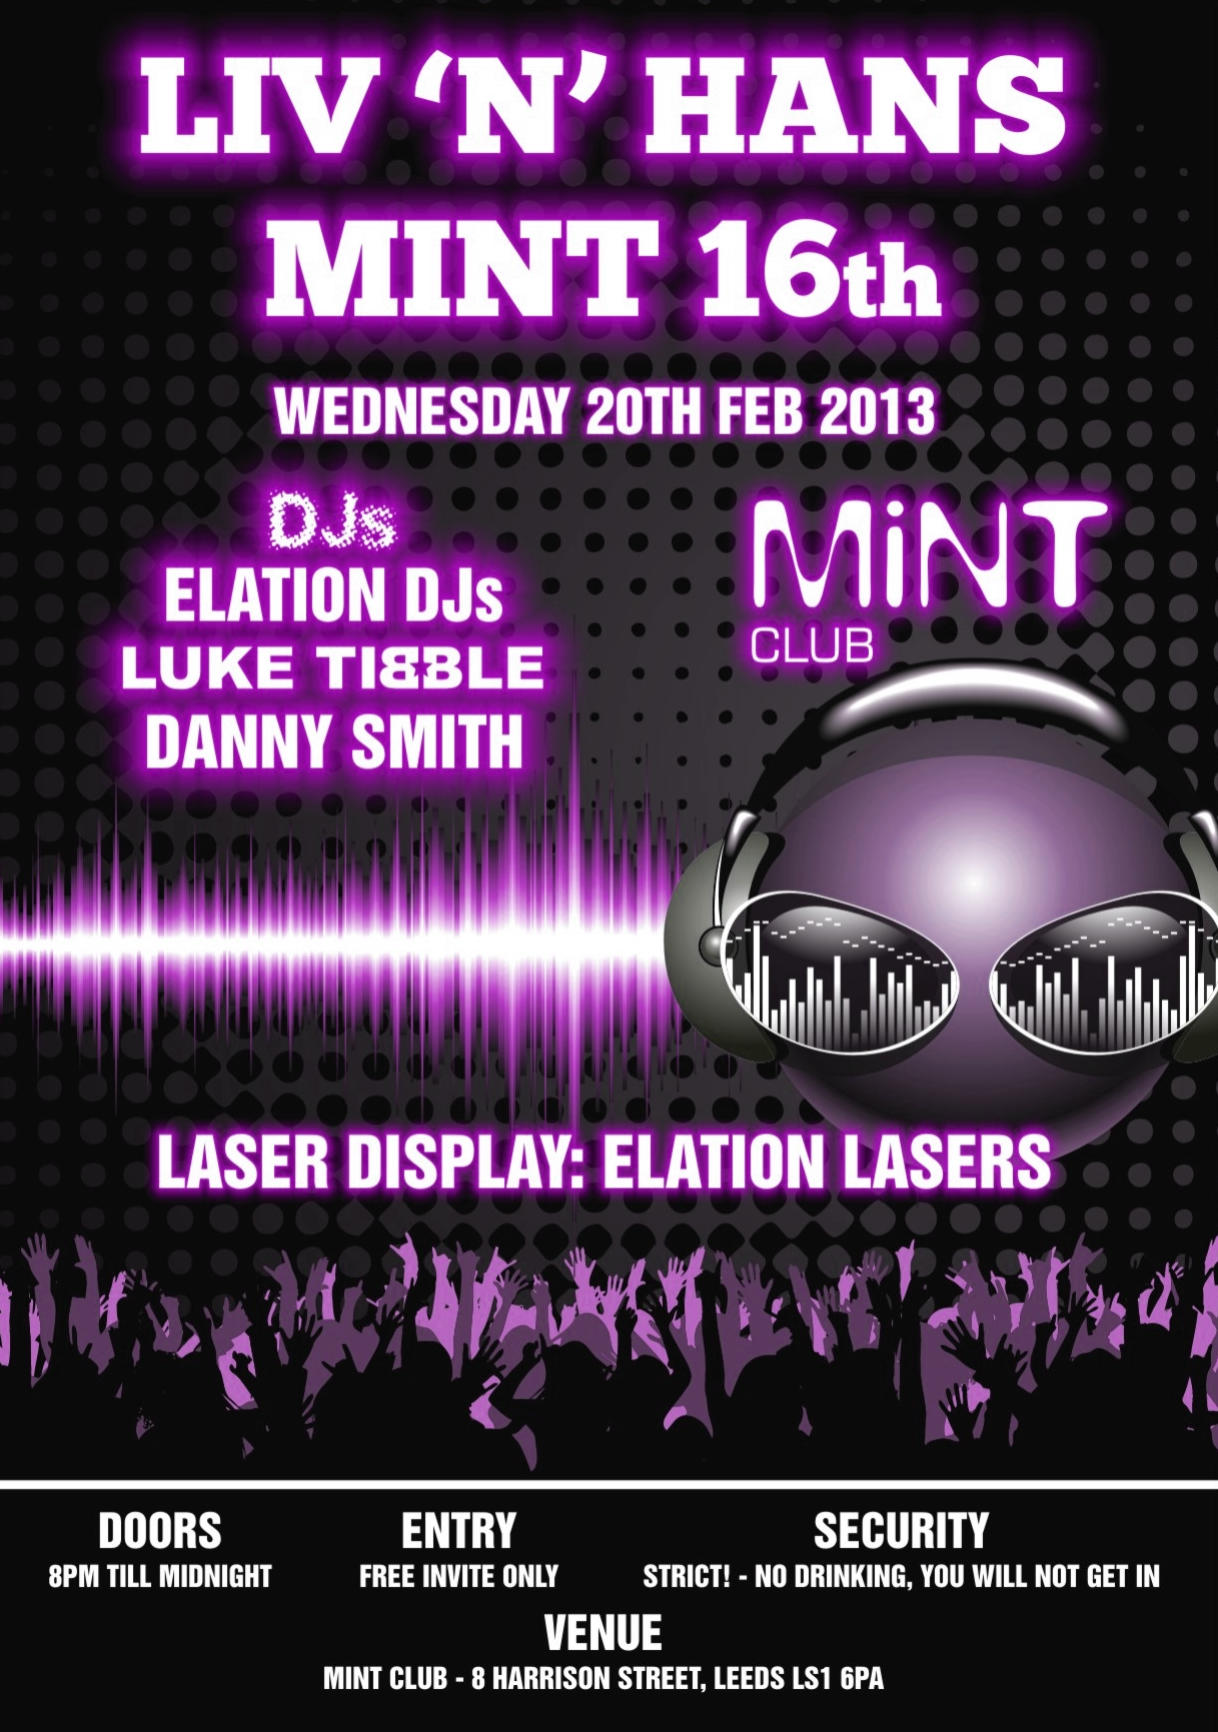 Liv & Hans Mint 16th - Mint Club Leeds - Elation DJs - Luke Tibble - Danny Smith